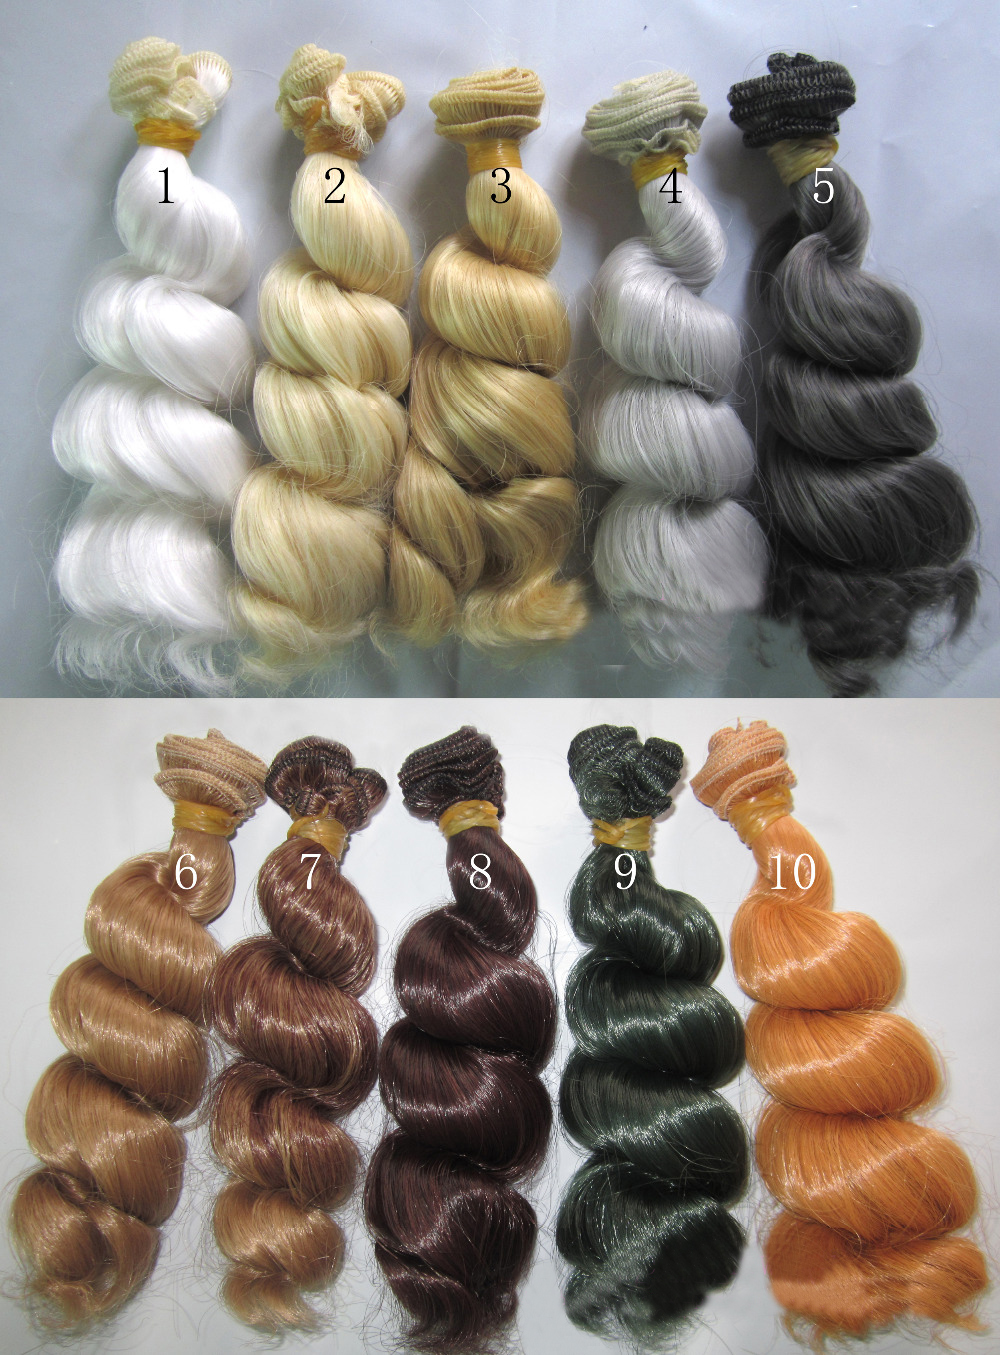 1pcs 15cm*100cm BJD/SD Doll Wigs DIY New Large waves hair style Multi color Hair for dolls 25cm 100cm doll wigs hair refires bjd hair black gold brown green straight wig thick hair for 1 3 1 4 bjd diy